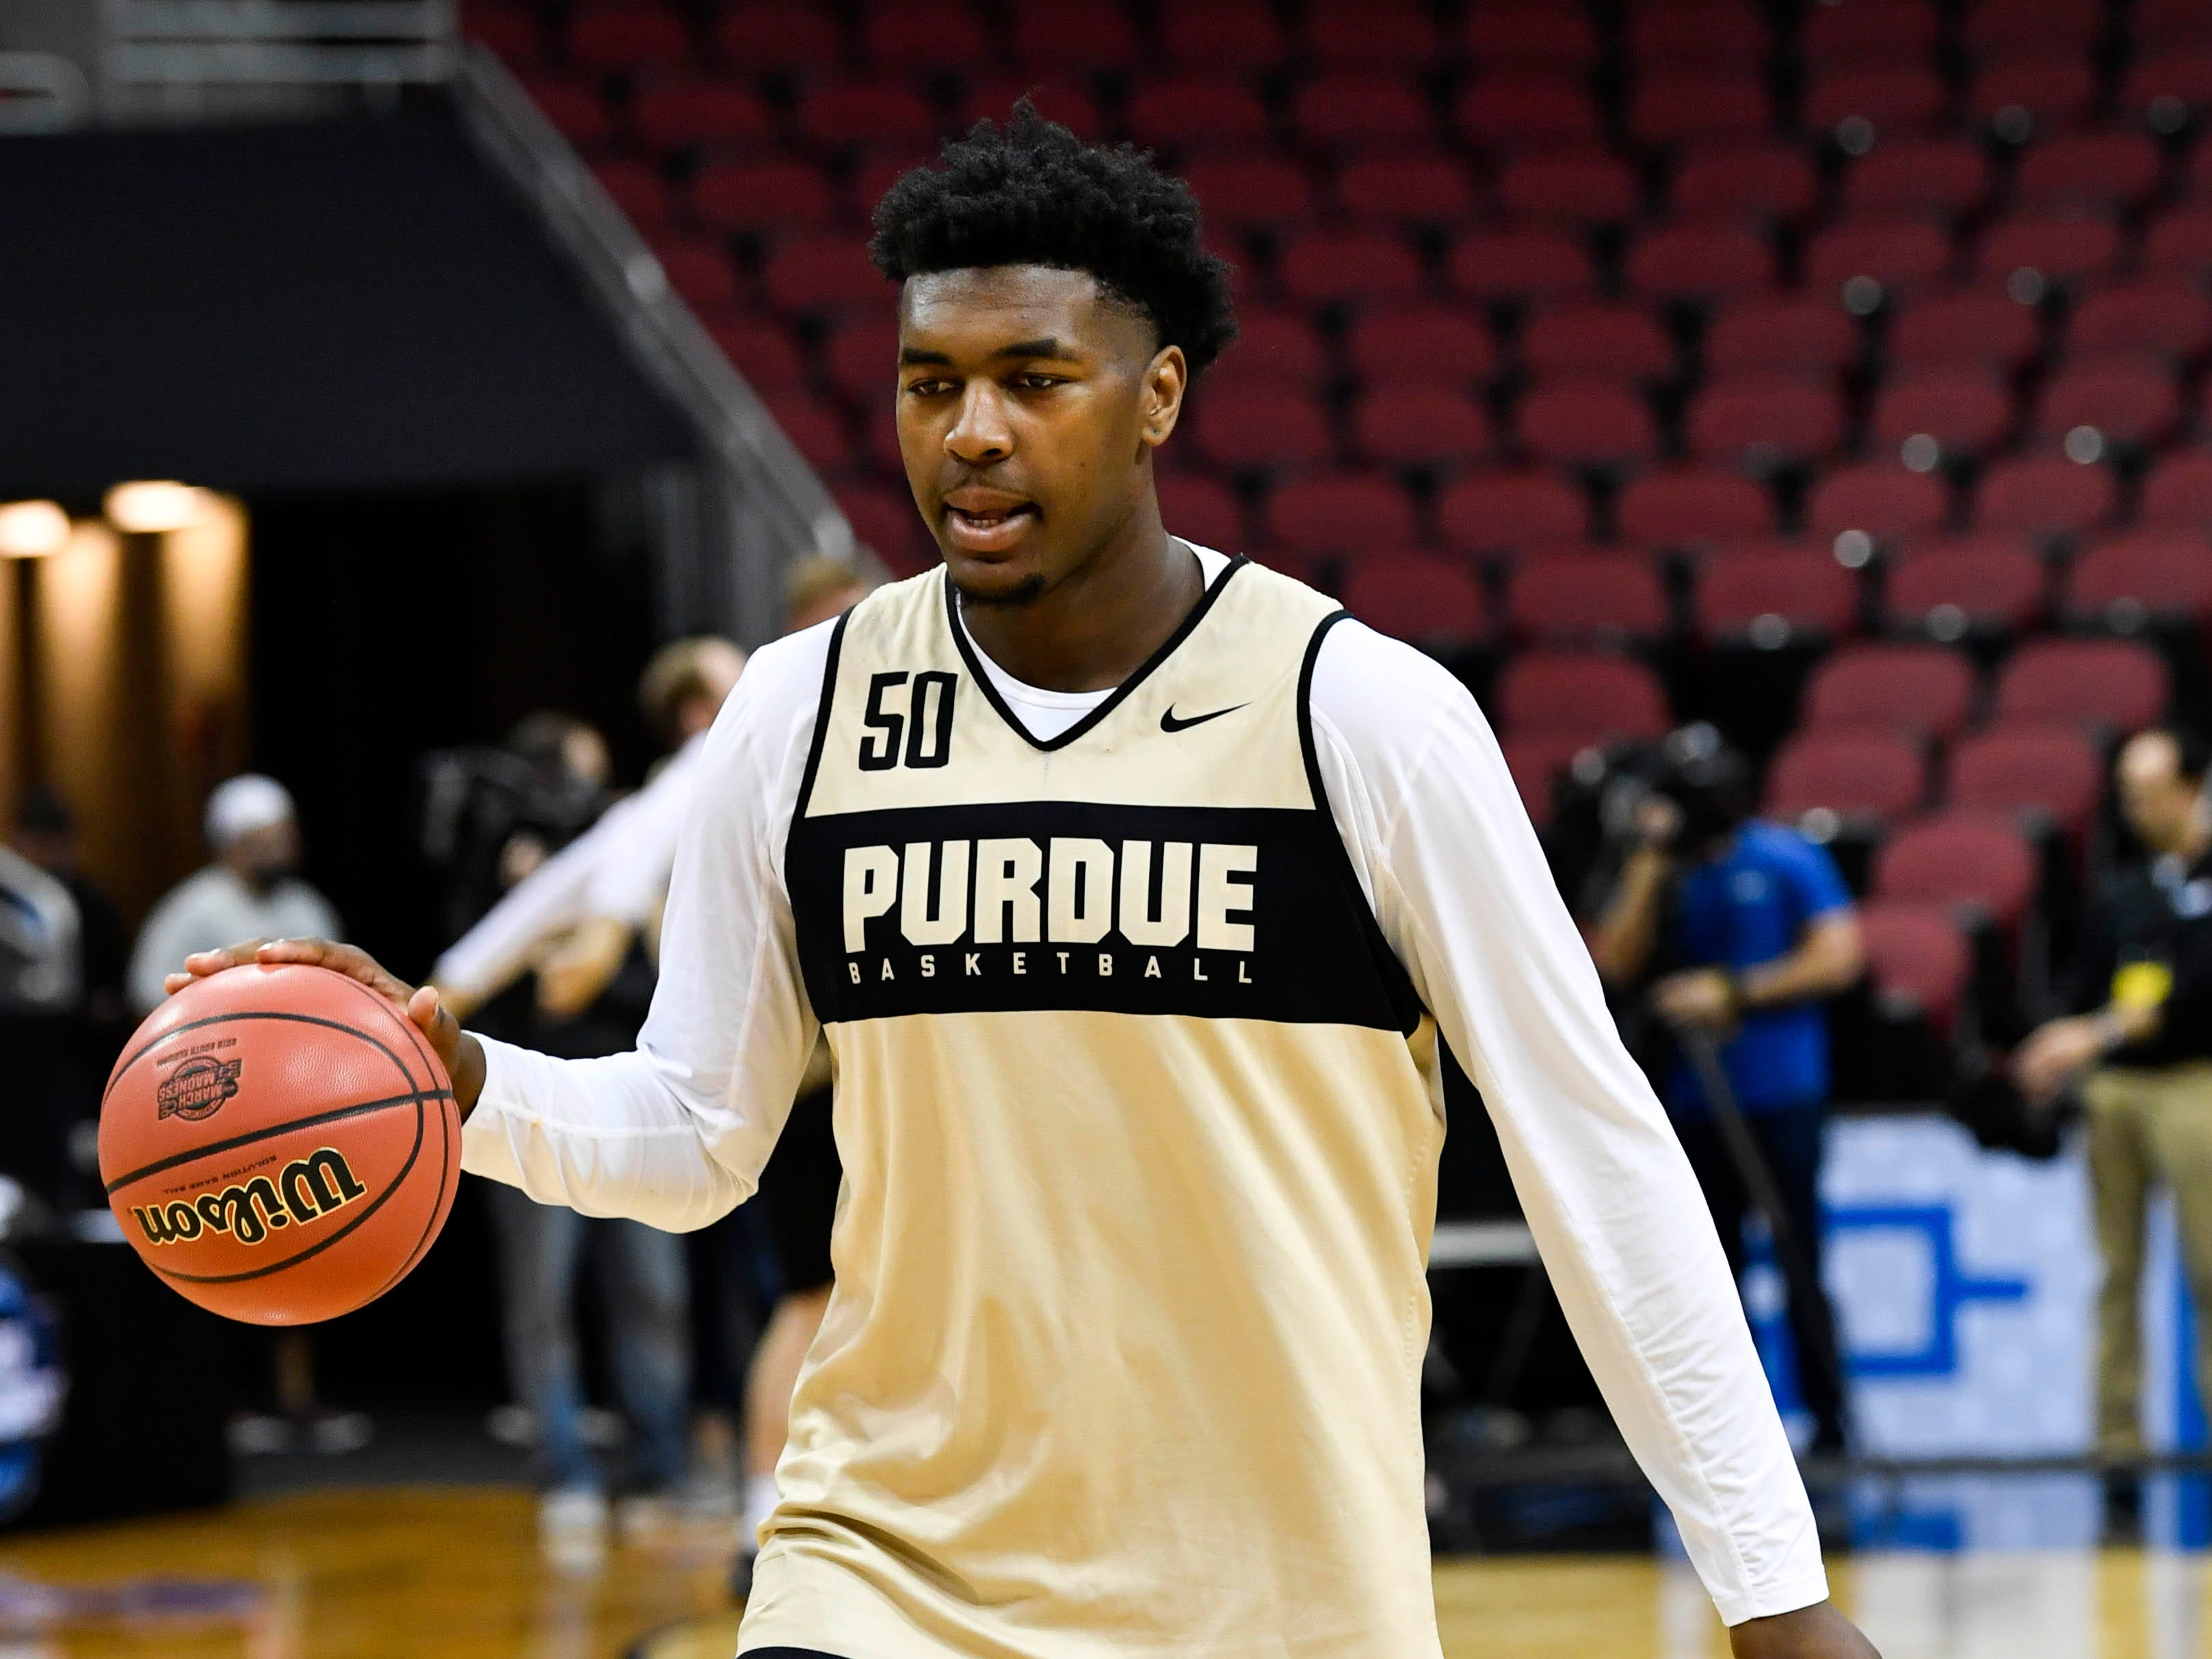 Mar 27, 2019; Louisville, KY, United States; Purdue Boilermakers forward Trevion Williams (50) dribbles during the Purdue Boilermakers practice for the south regional of the 2019 NCAA Tournament at KFC Yum Center. Mandatory Credit: Jamie Rhodes-USA TODAY Sports